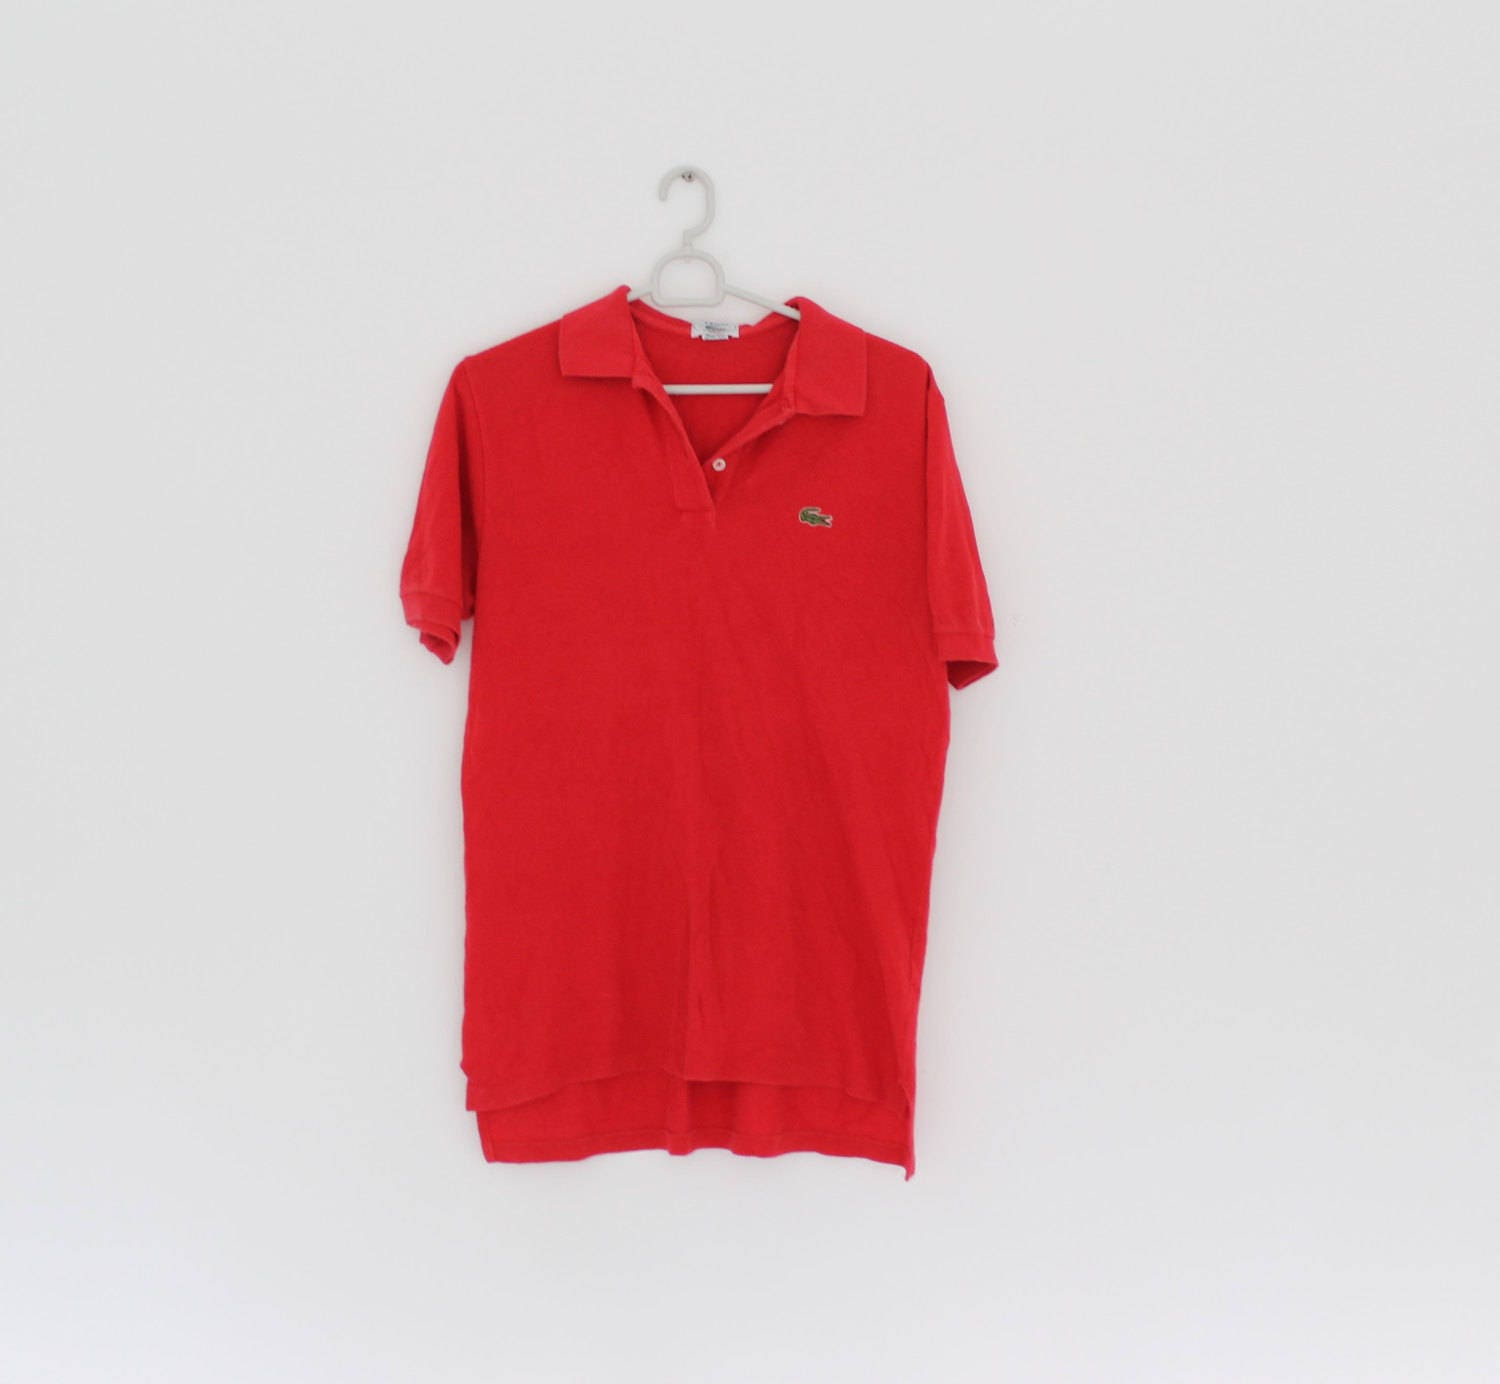 Izod Lacoste 80s Red Polo Shirt Small Cotton Red Short Etsy